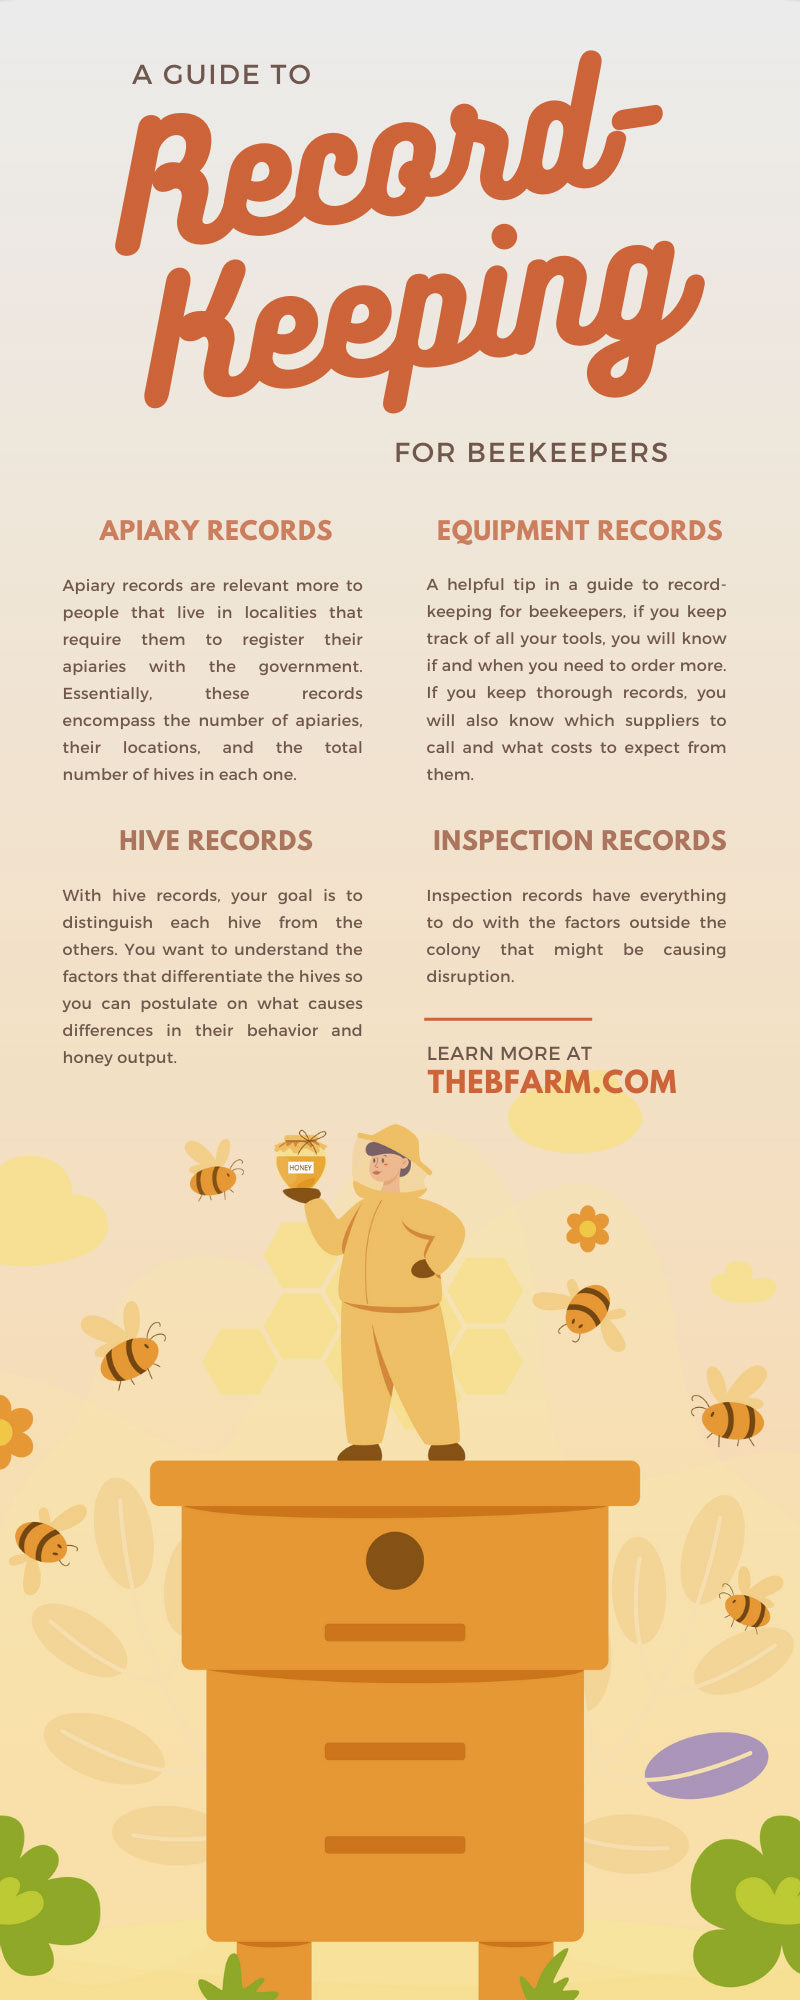 A Guide To Record-Keeping for Beekeepers